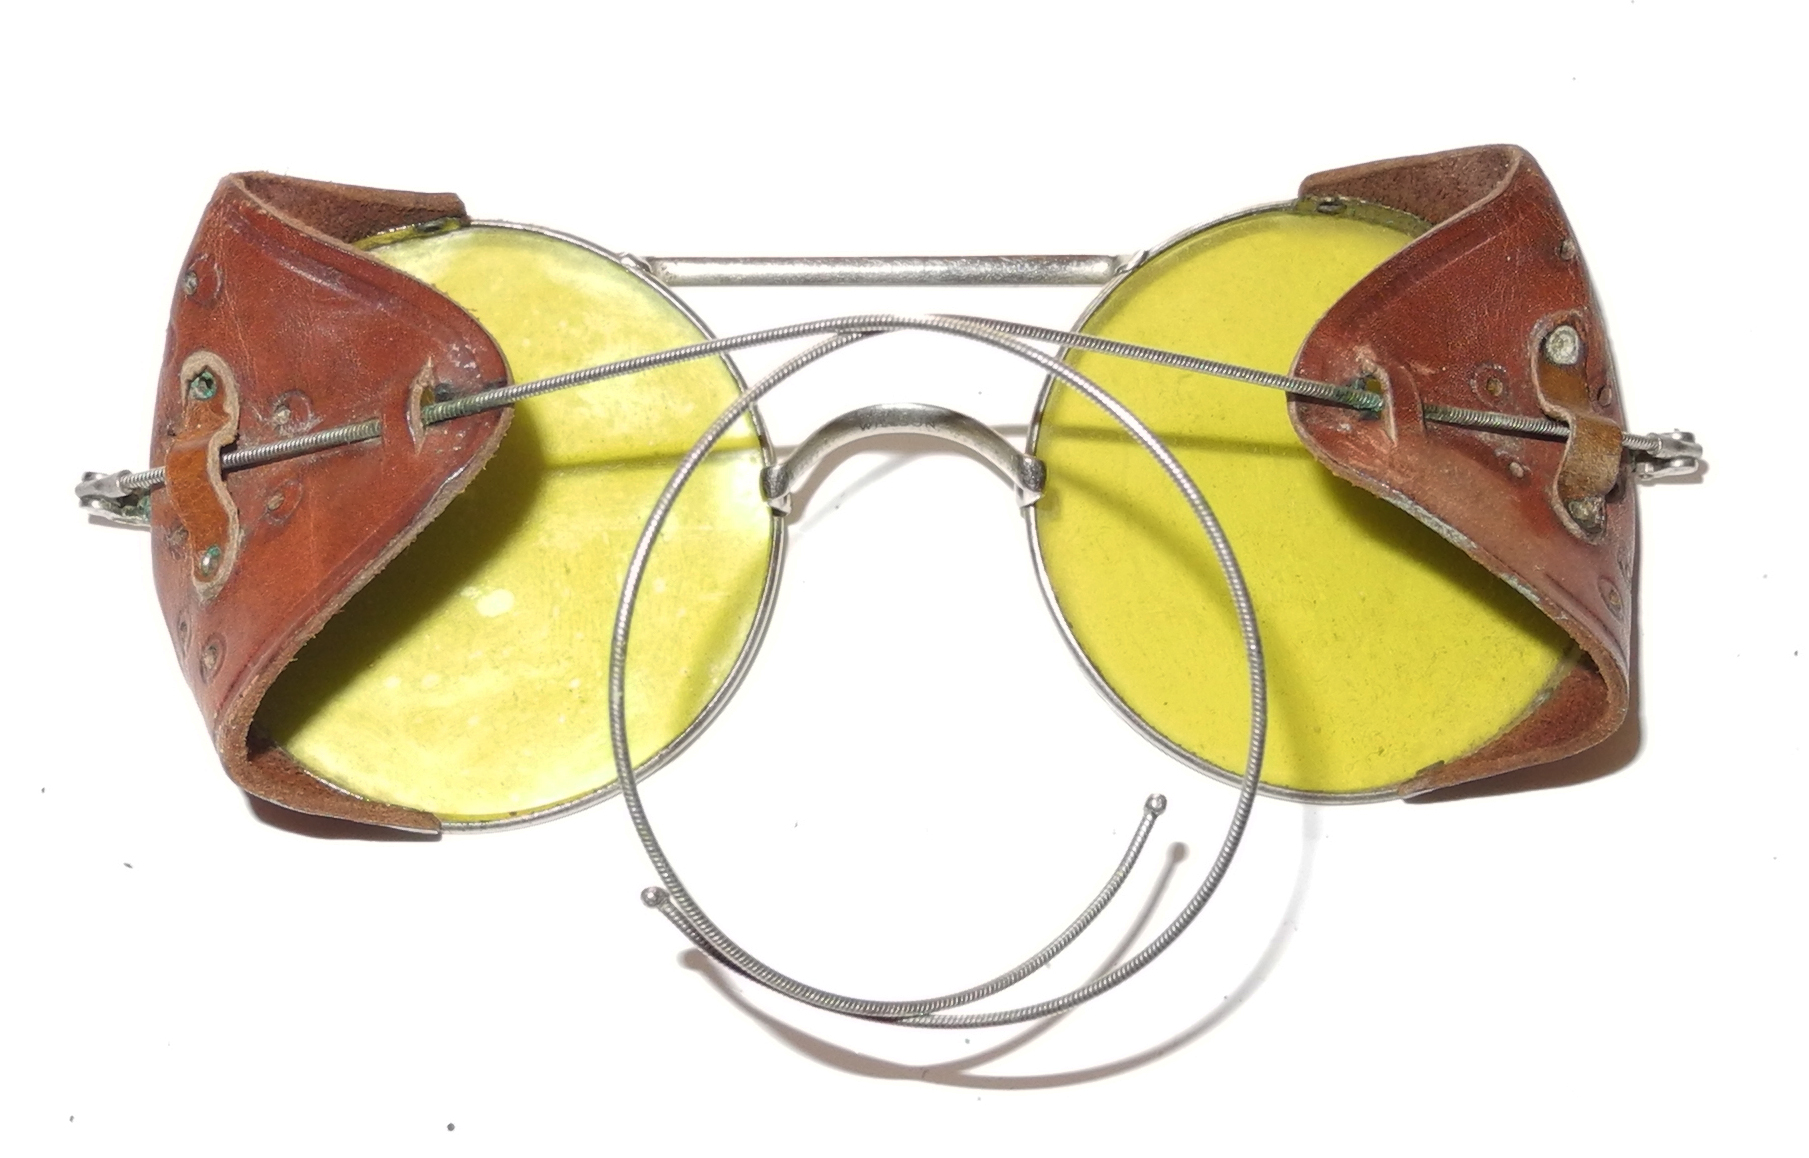 Willson N86 goggles 1918